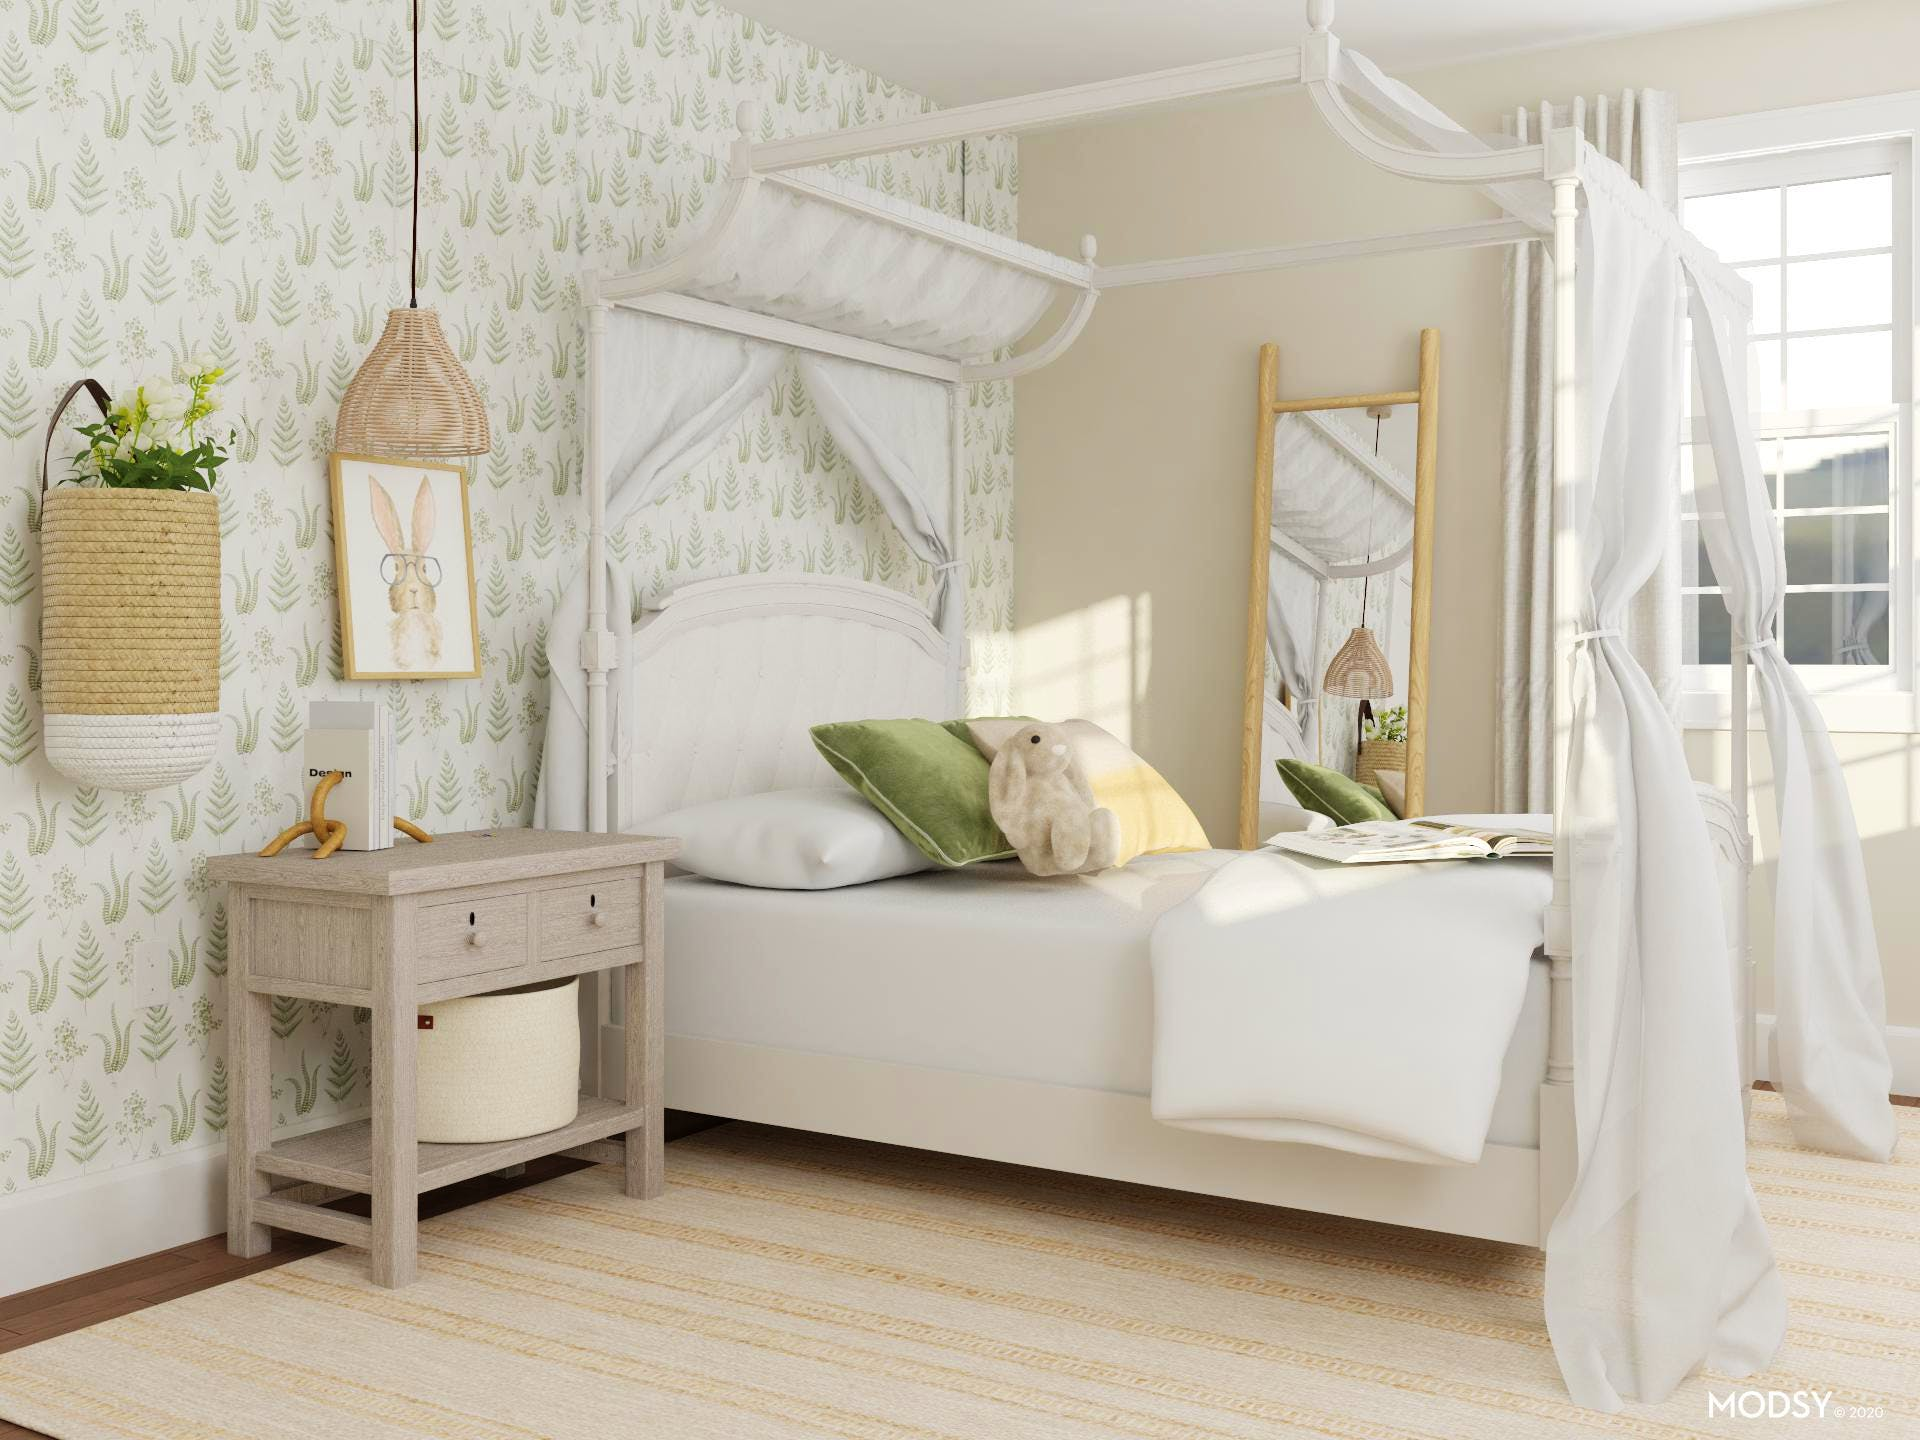 Lovely Transitional Bedroom with a Touch of Green